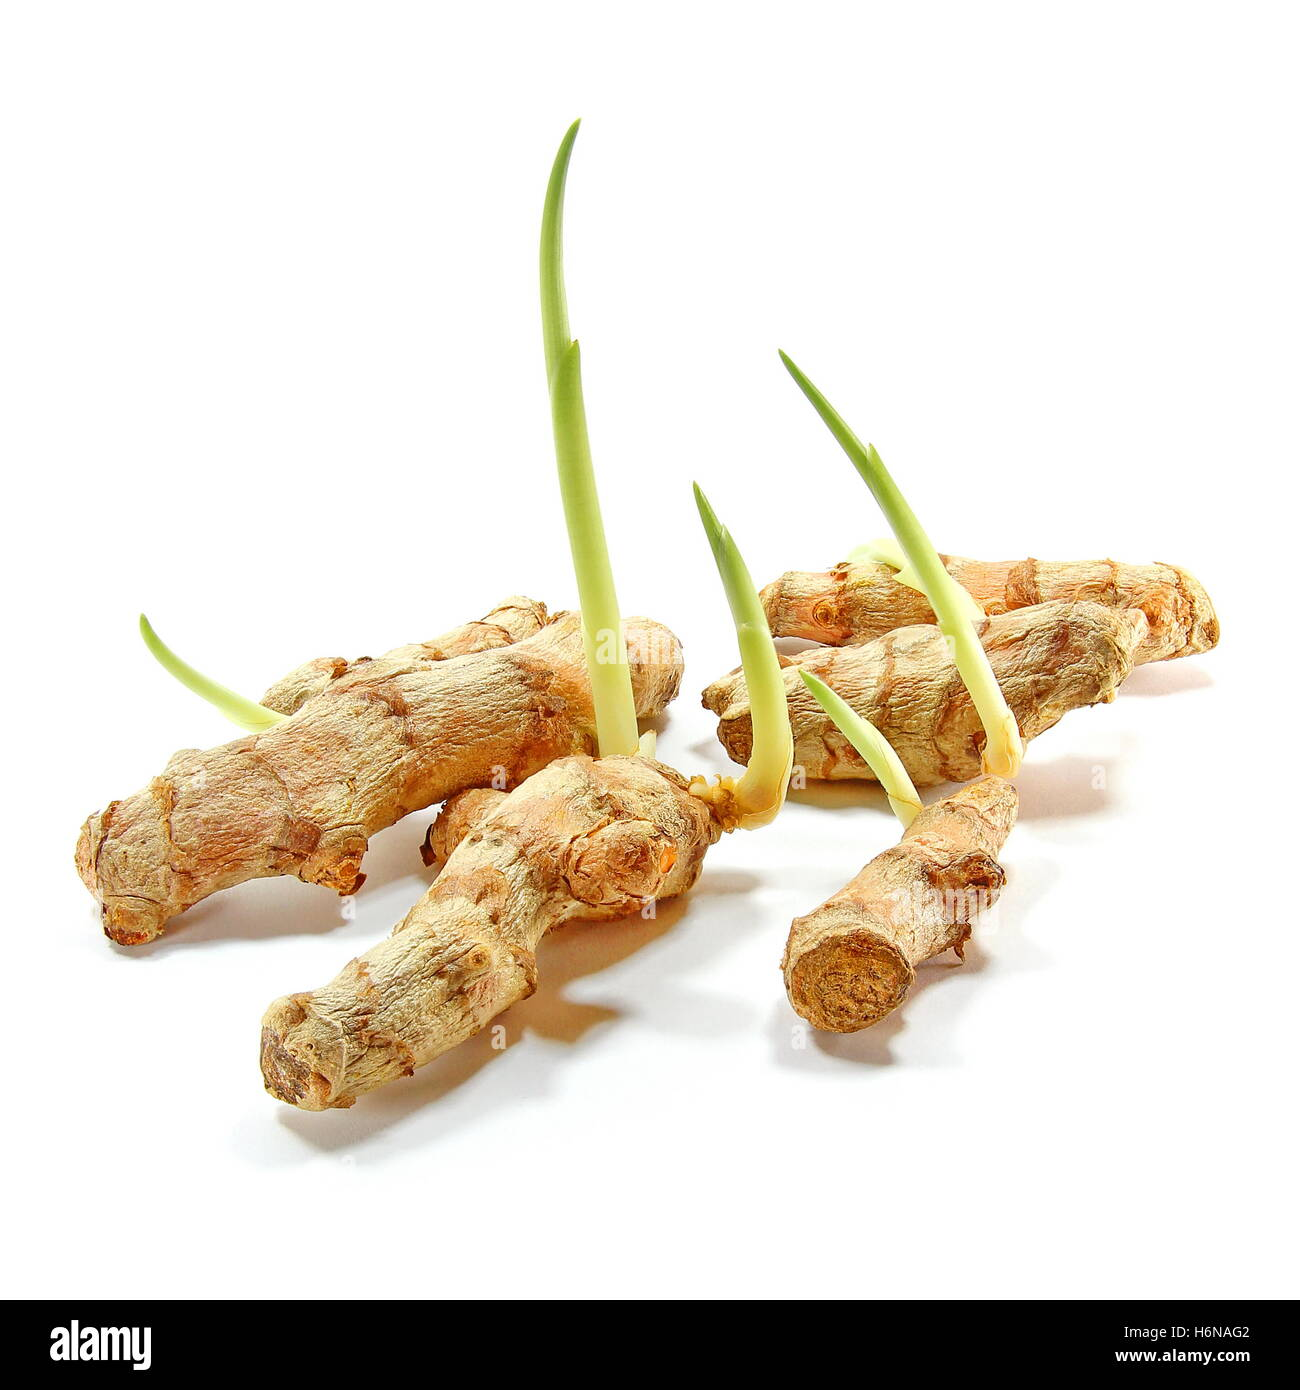 how to grow turmeric plant in india